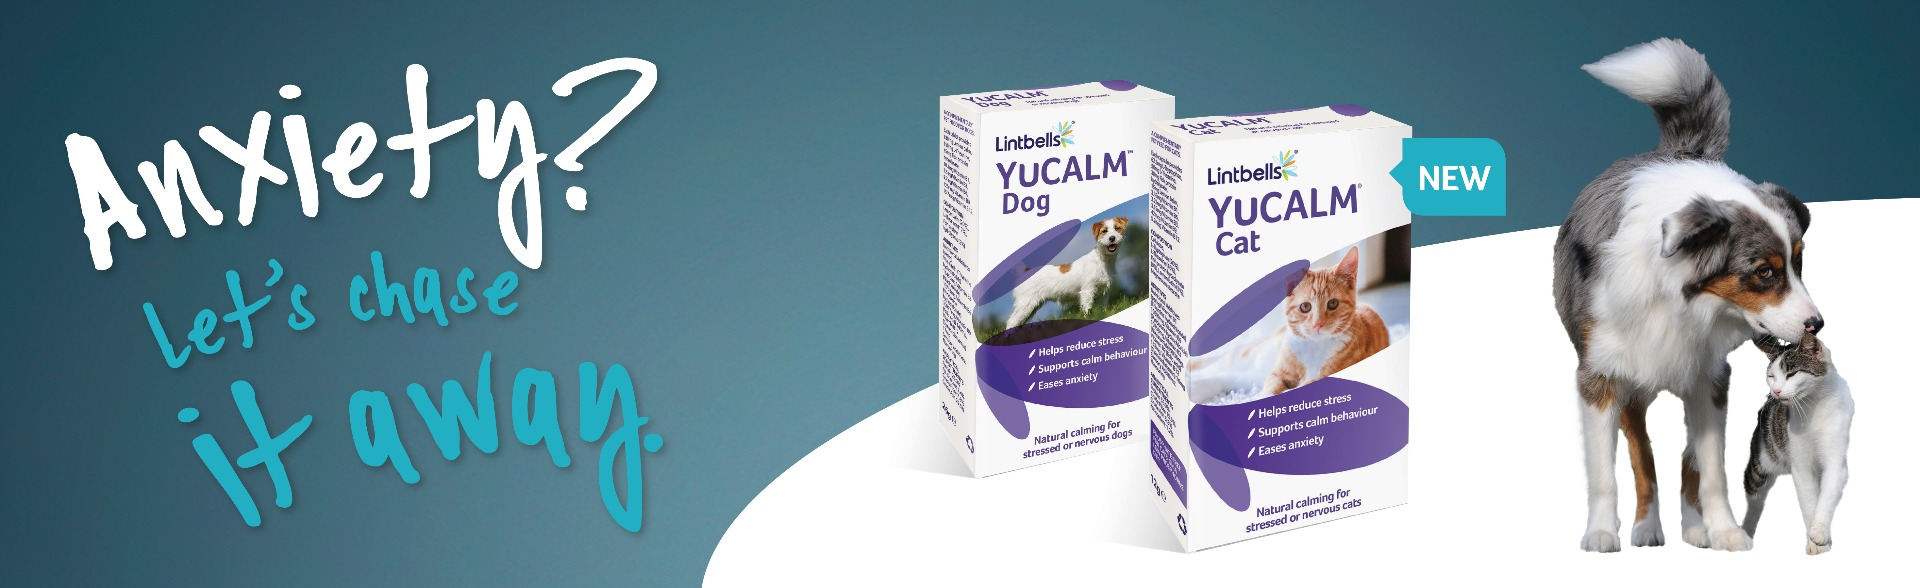 Chase away anxiety with YuCALM